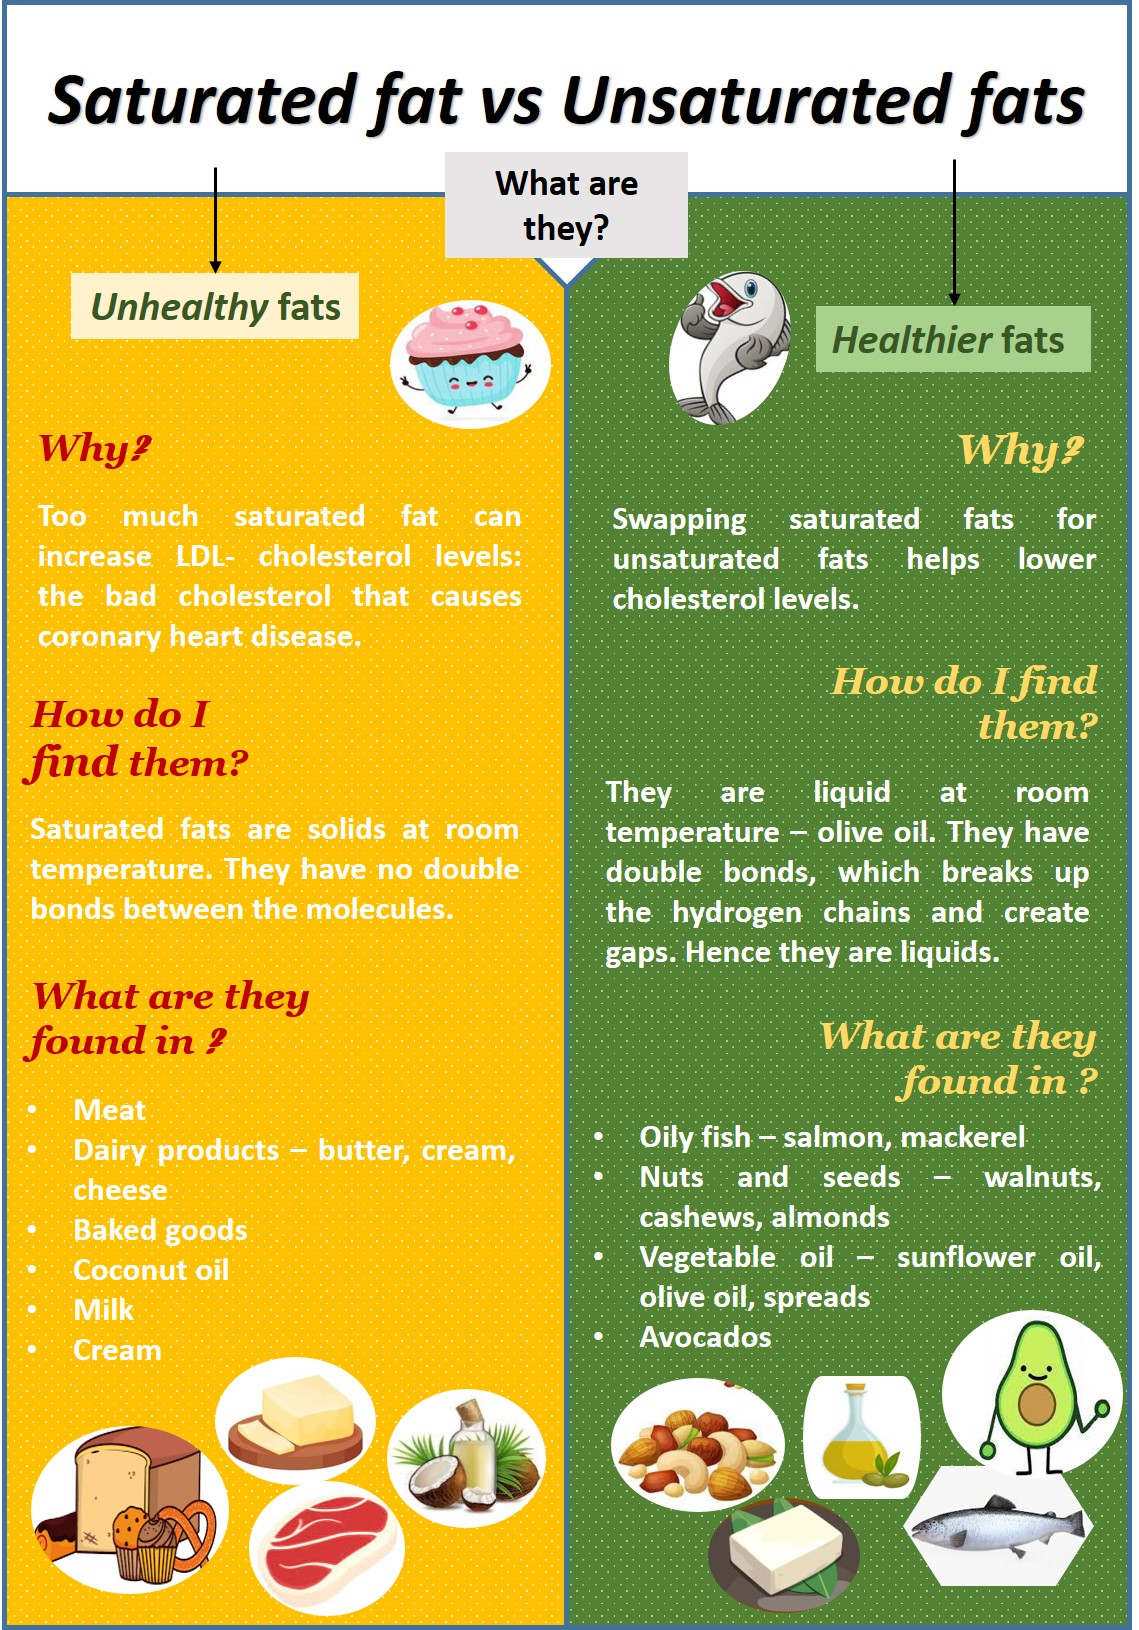 saturated fat vs unsaturated fats